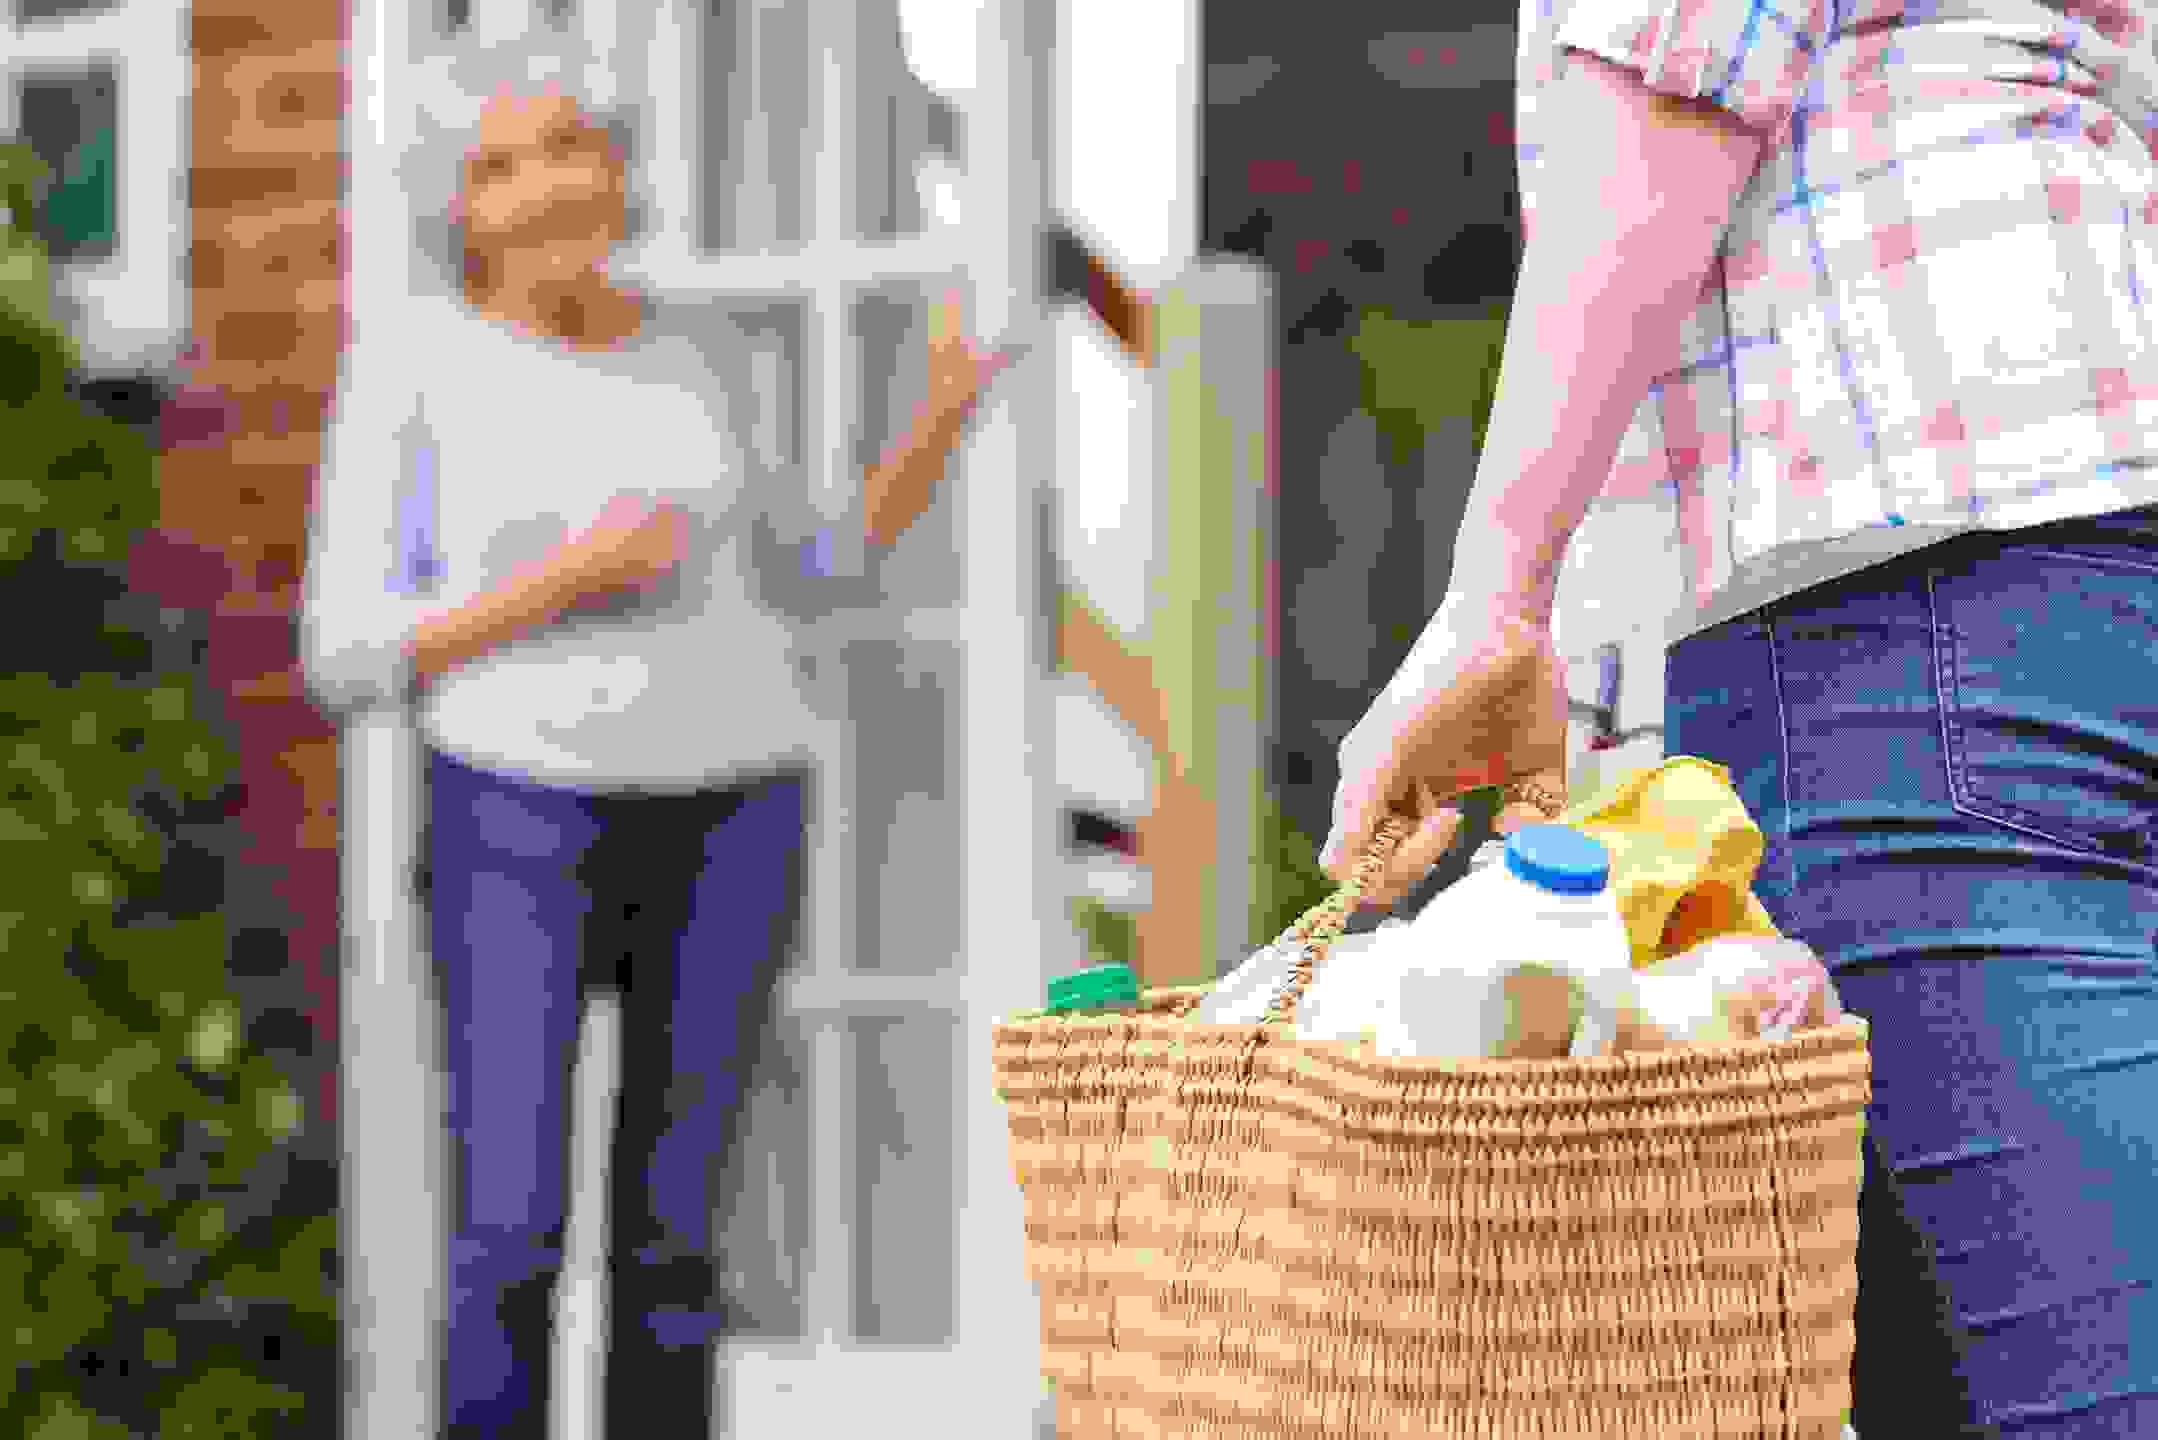 Image of person delivering groceries.